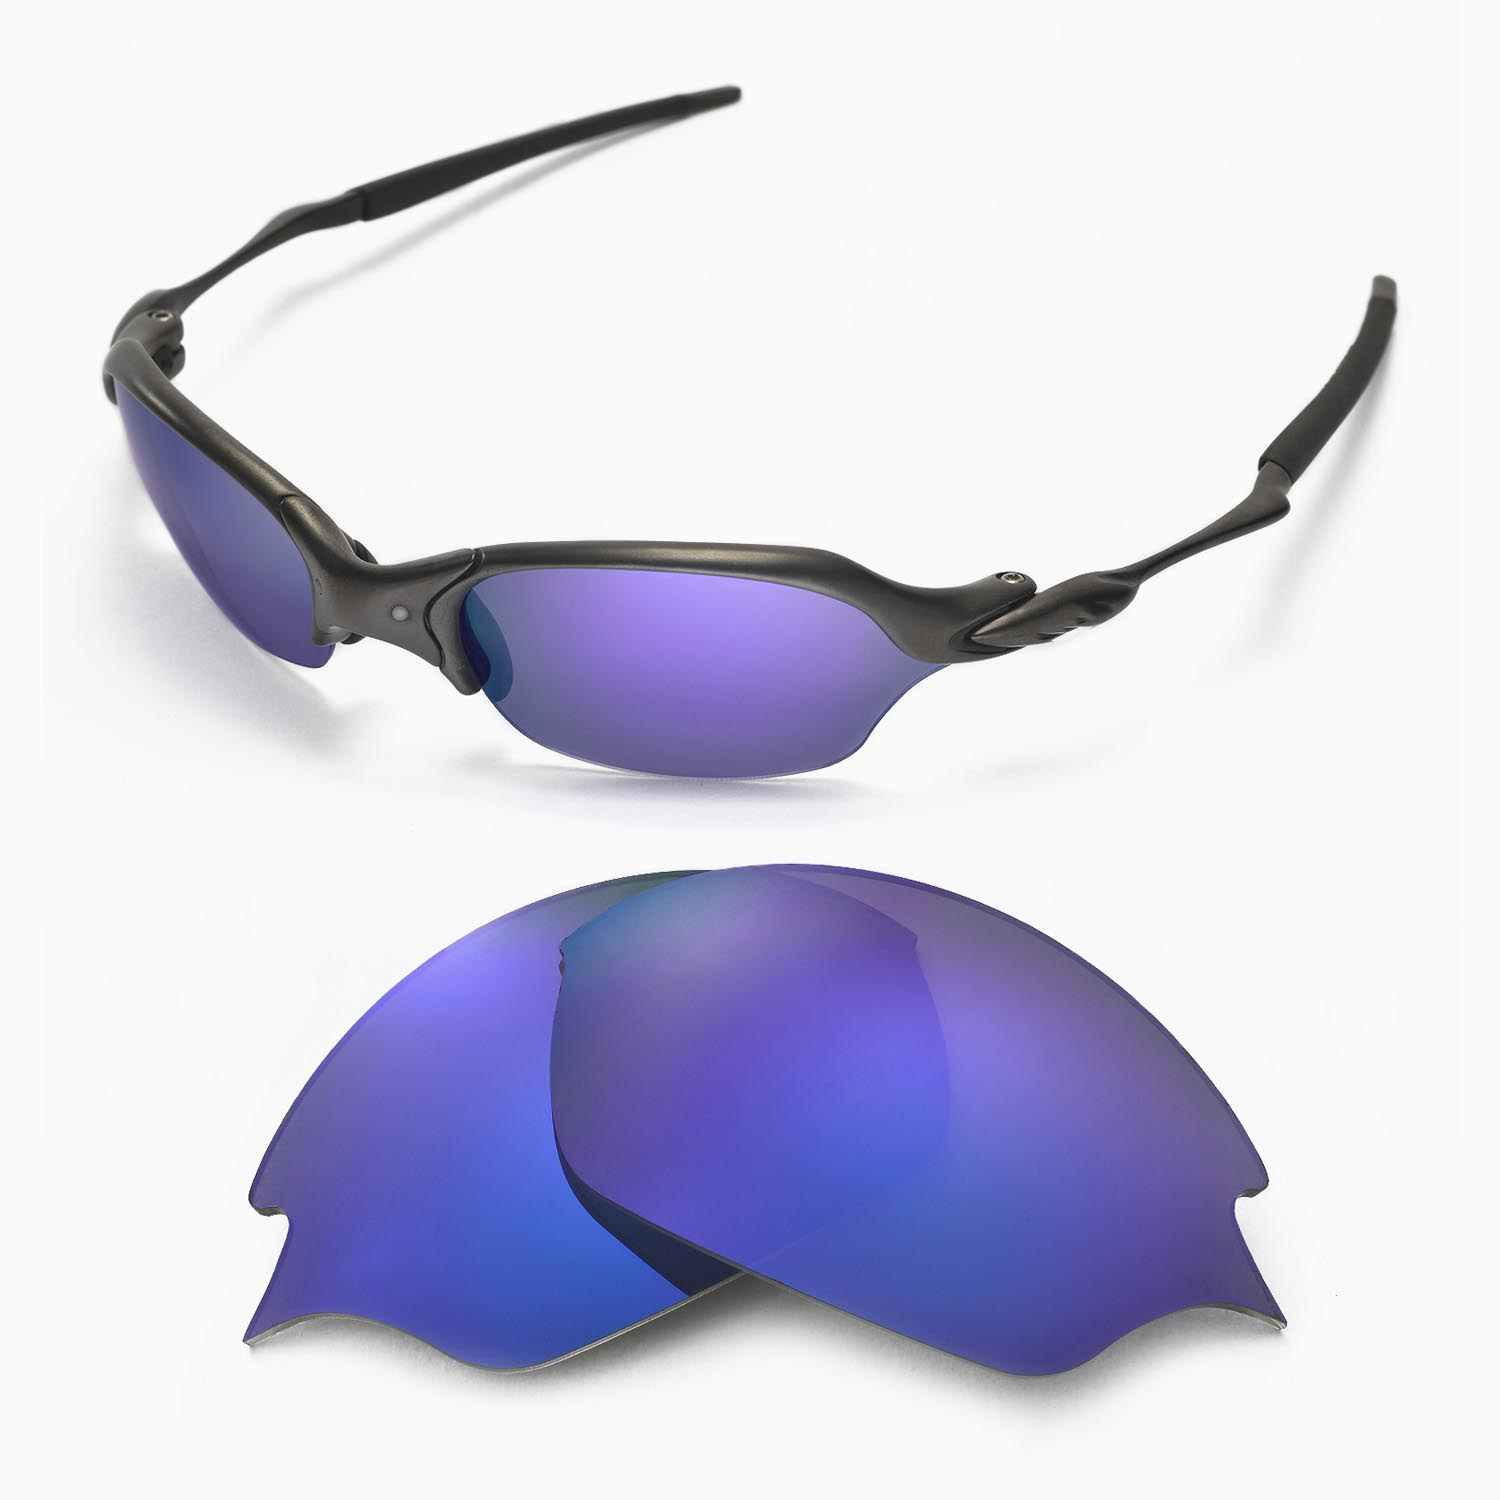 8485dccc310 Details about New Walleva Polarized Purple Replacement Lenses For Oakley  Romeo 2.0 Sunglasses